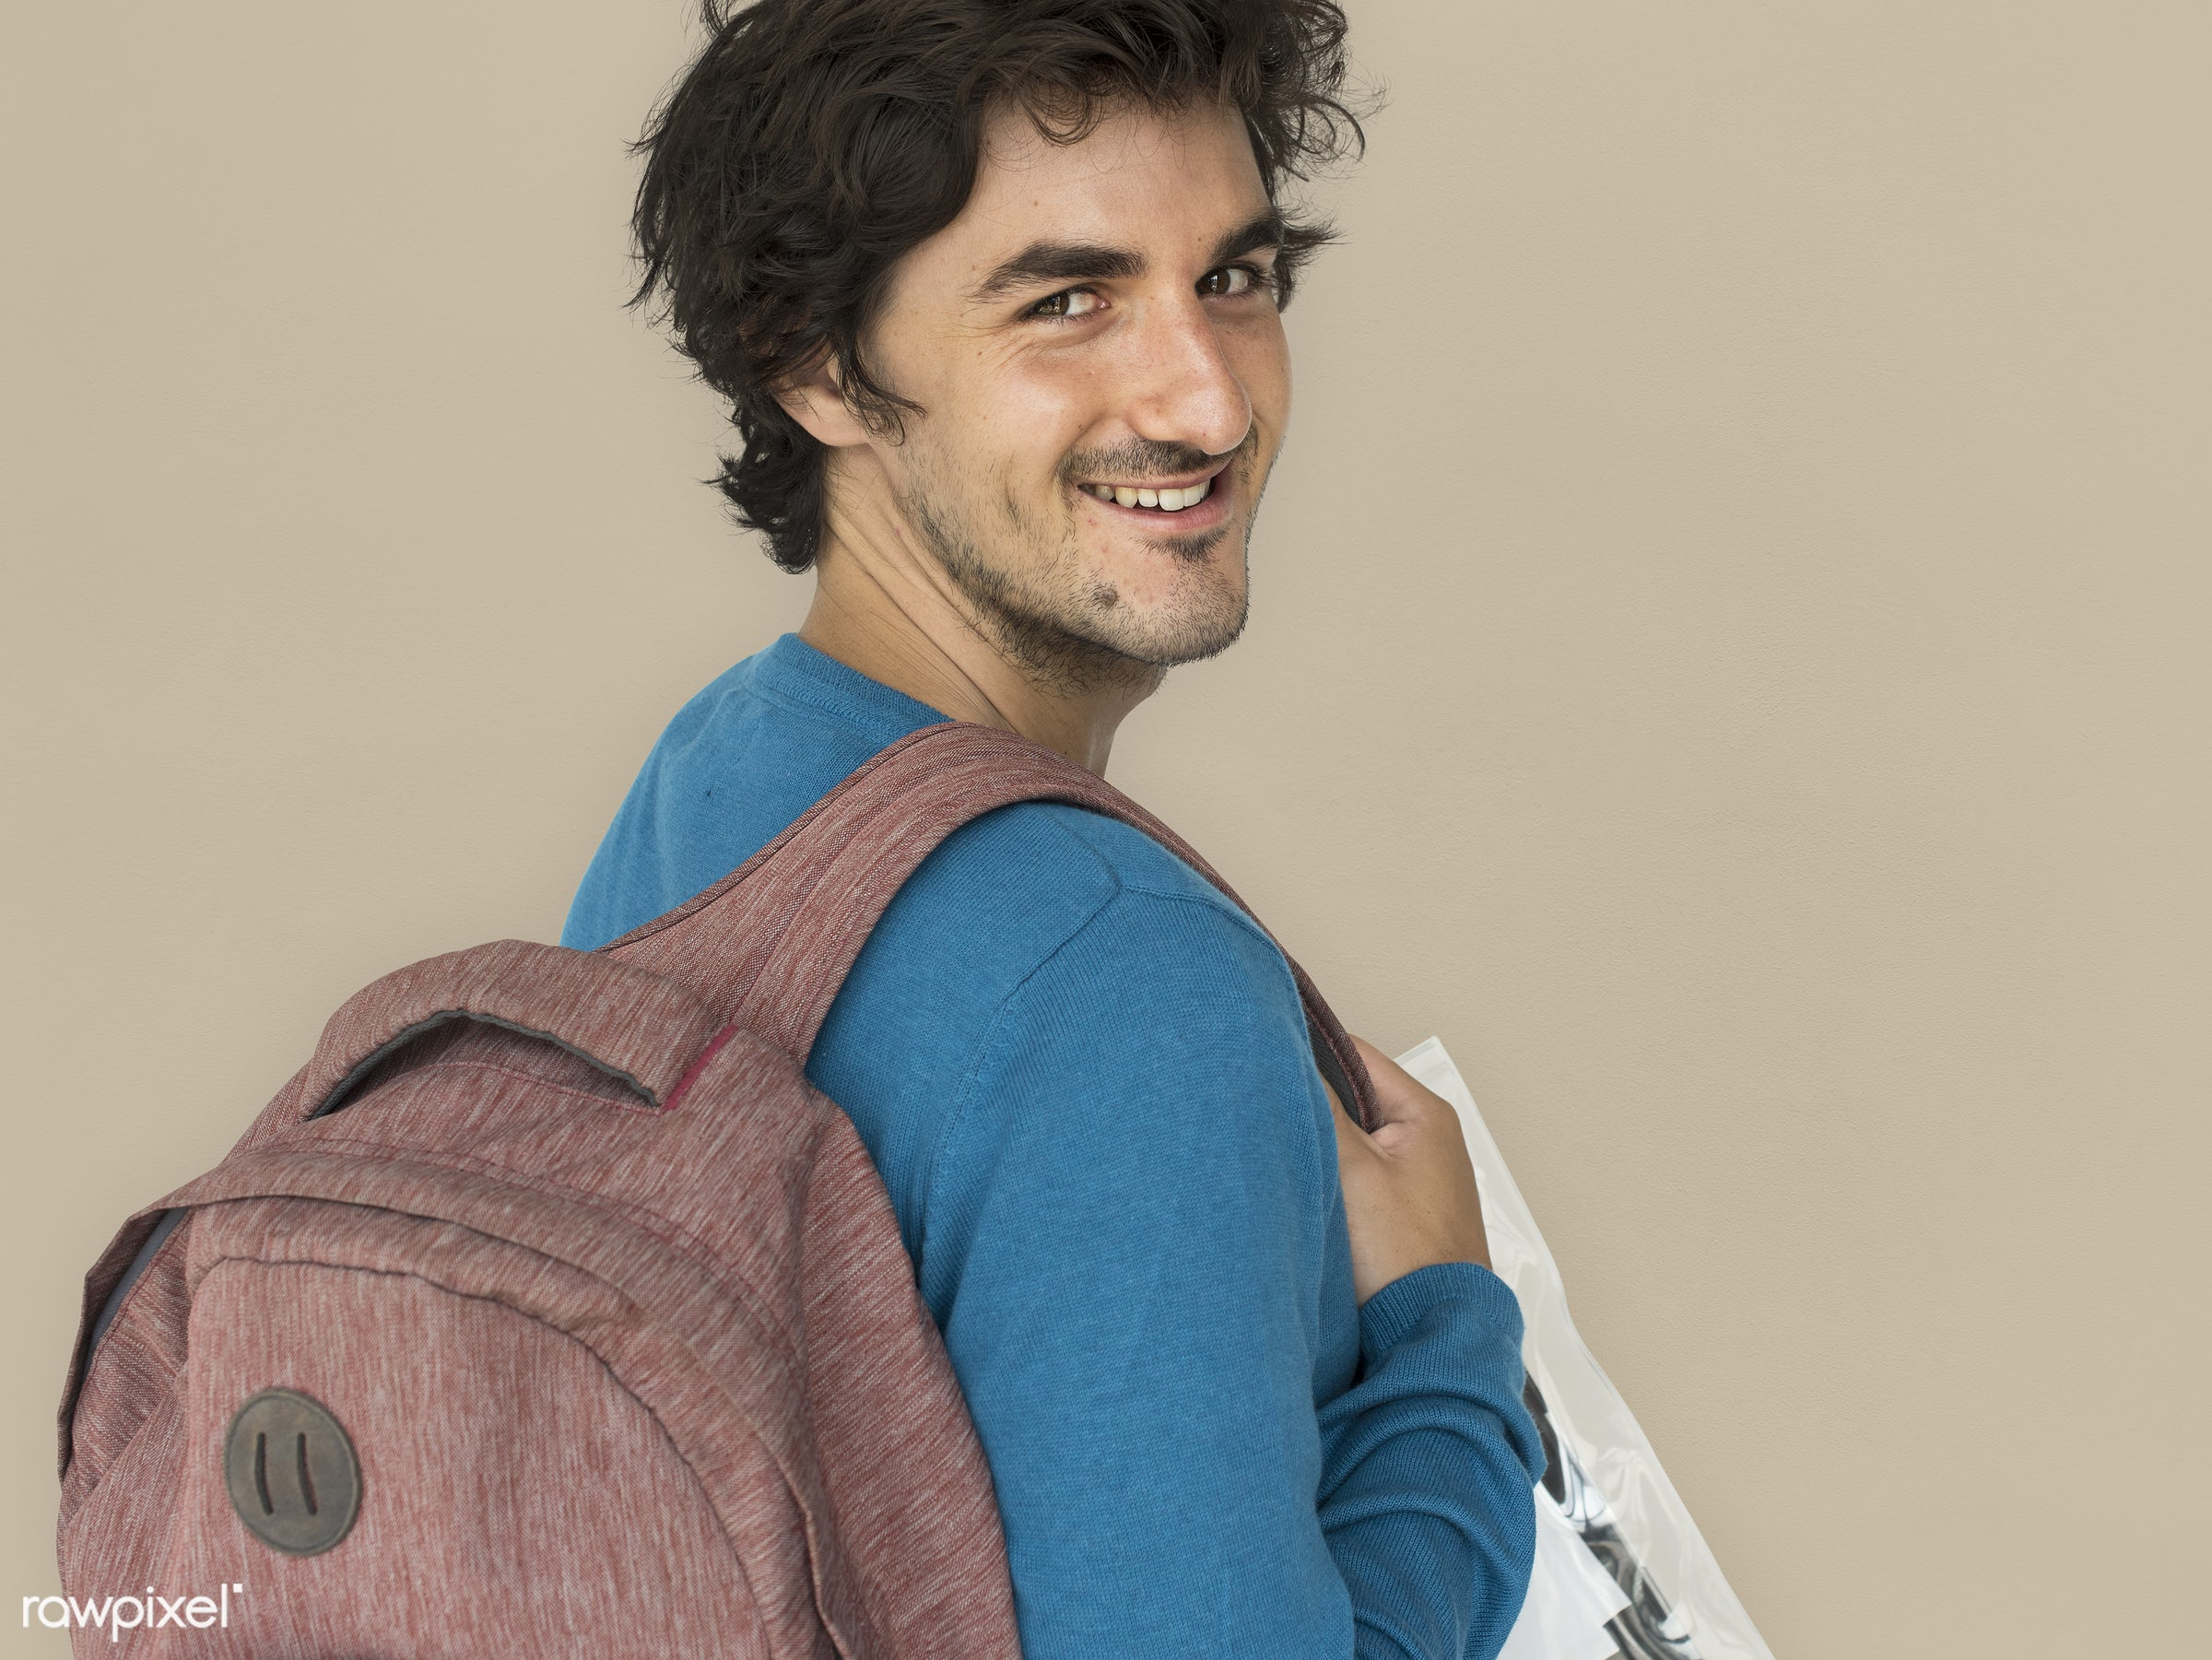 studio, expression, pastel, person, eart tones, people, caucasian, lifestyle, schoolbag, smile, positive, cheerful, isolated...